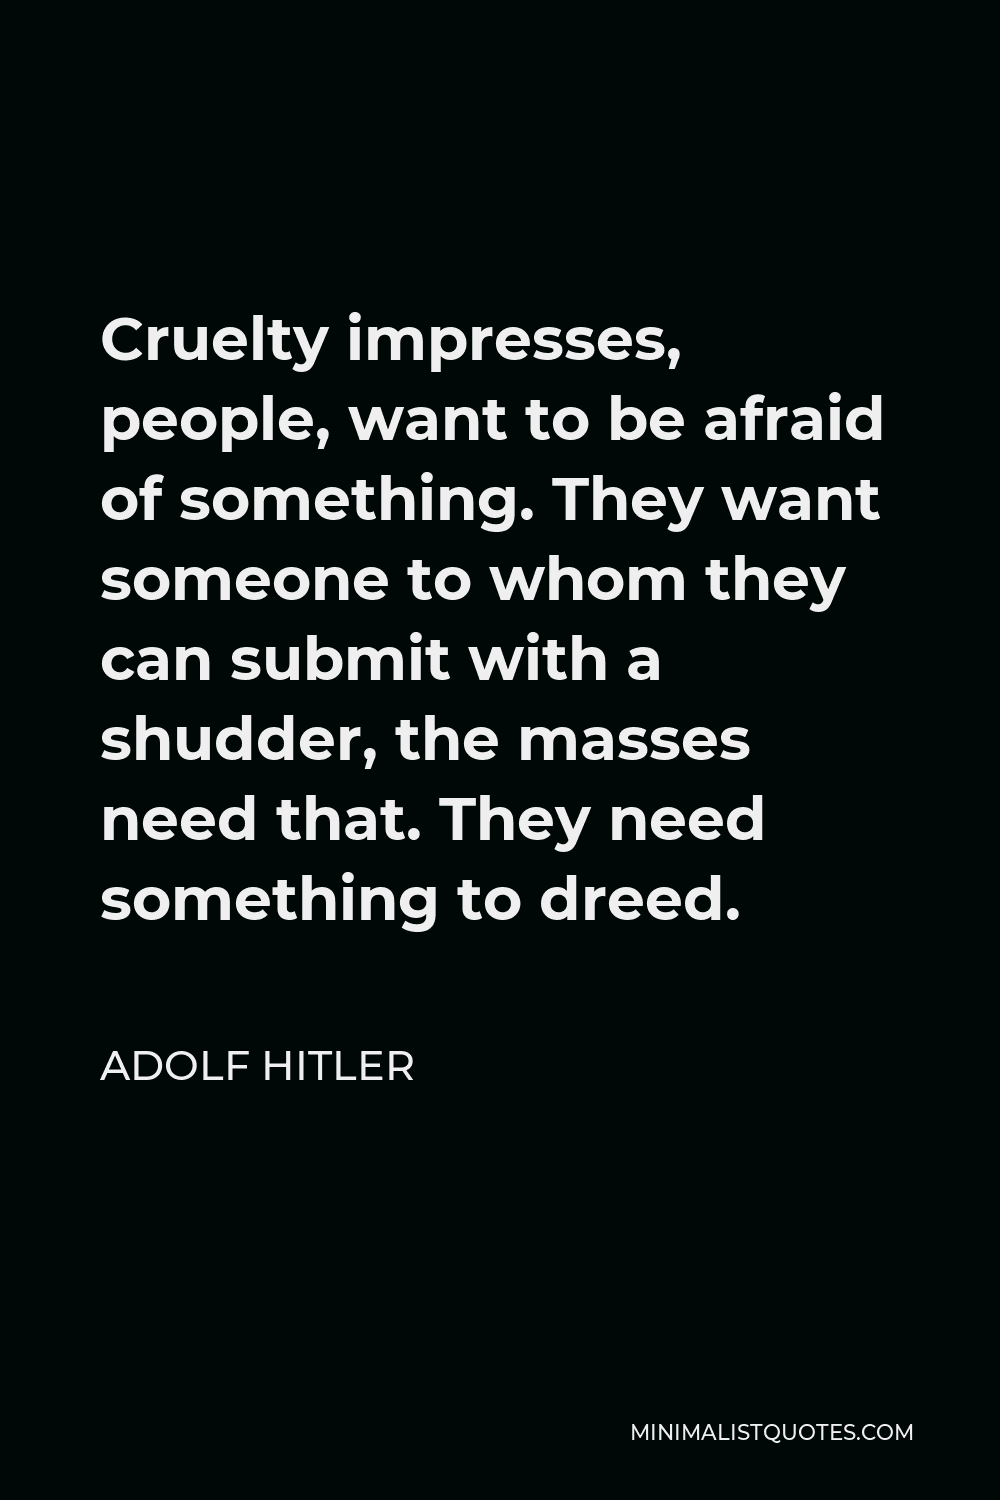 Adolf Hitler Quote - Cruelty impresses, people, want to be afraid of something. They want someone to whom they can submit with a shudder, the masses need that. They need something to dreed.